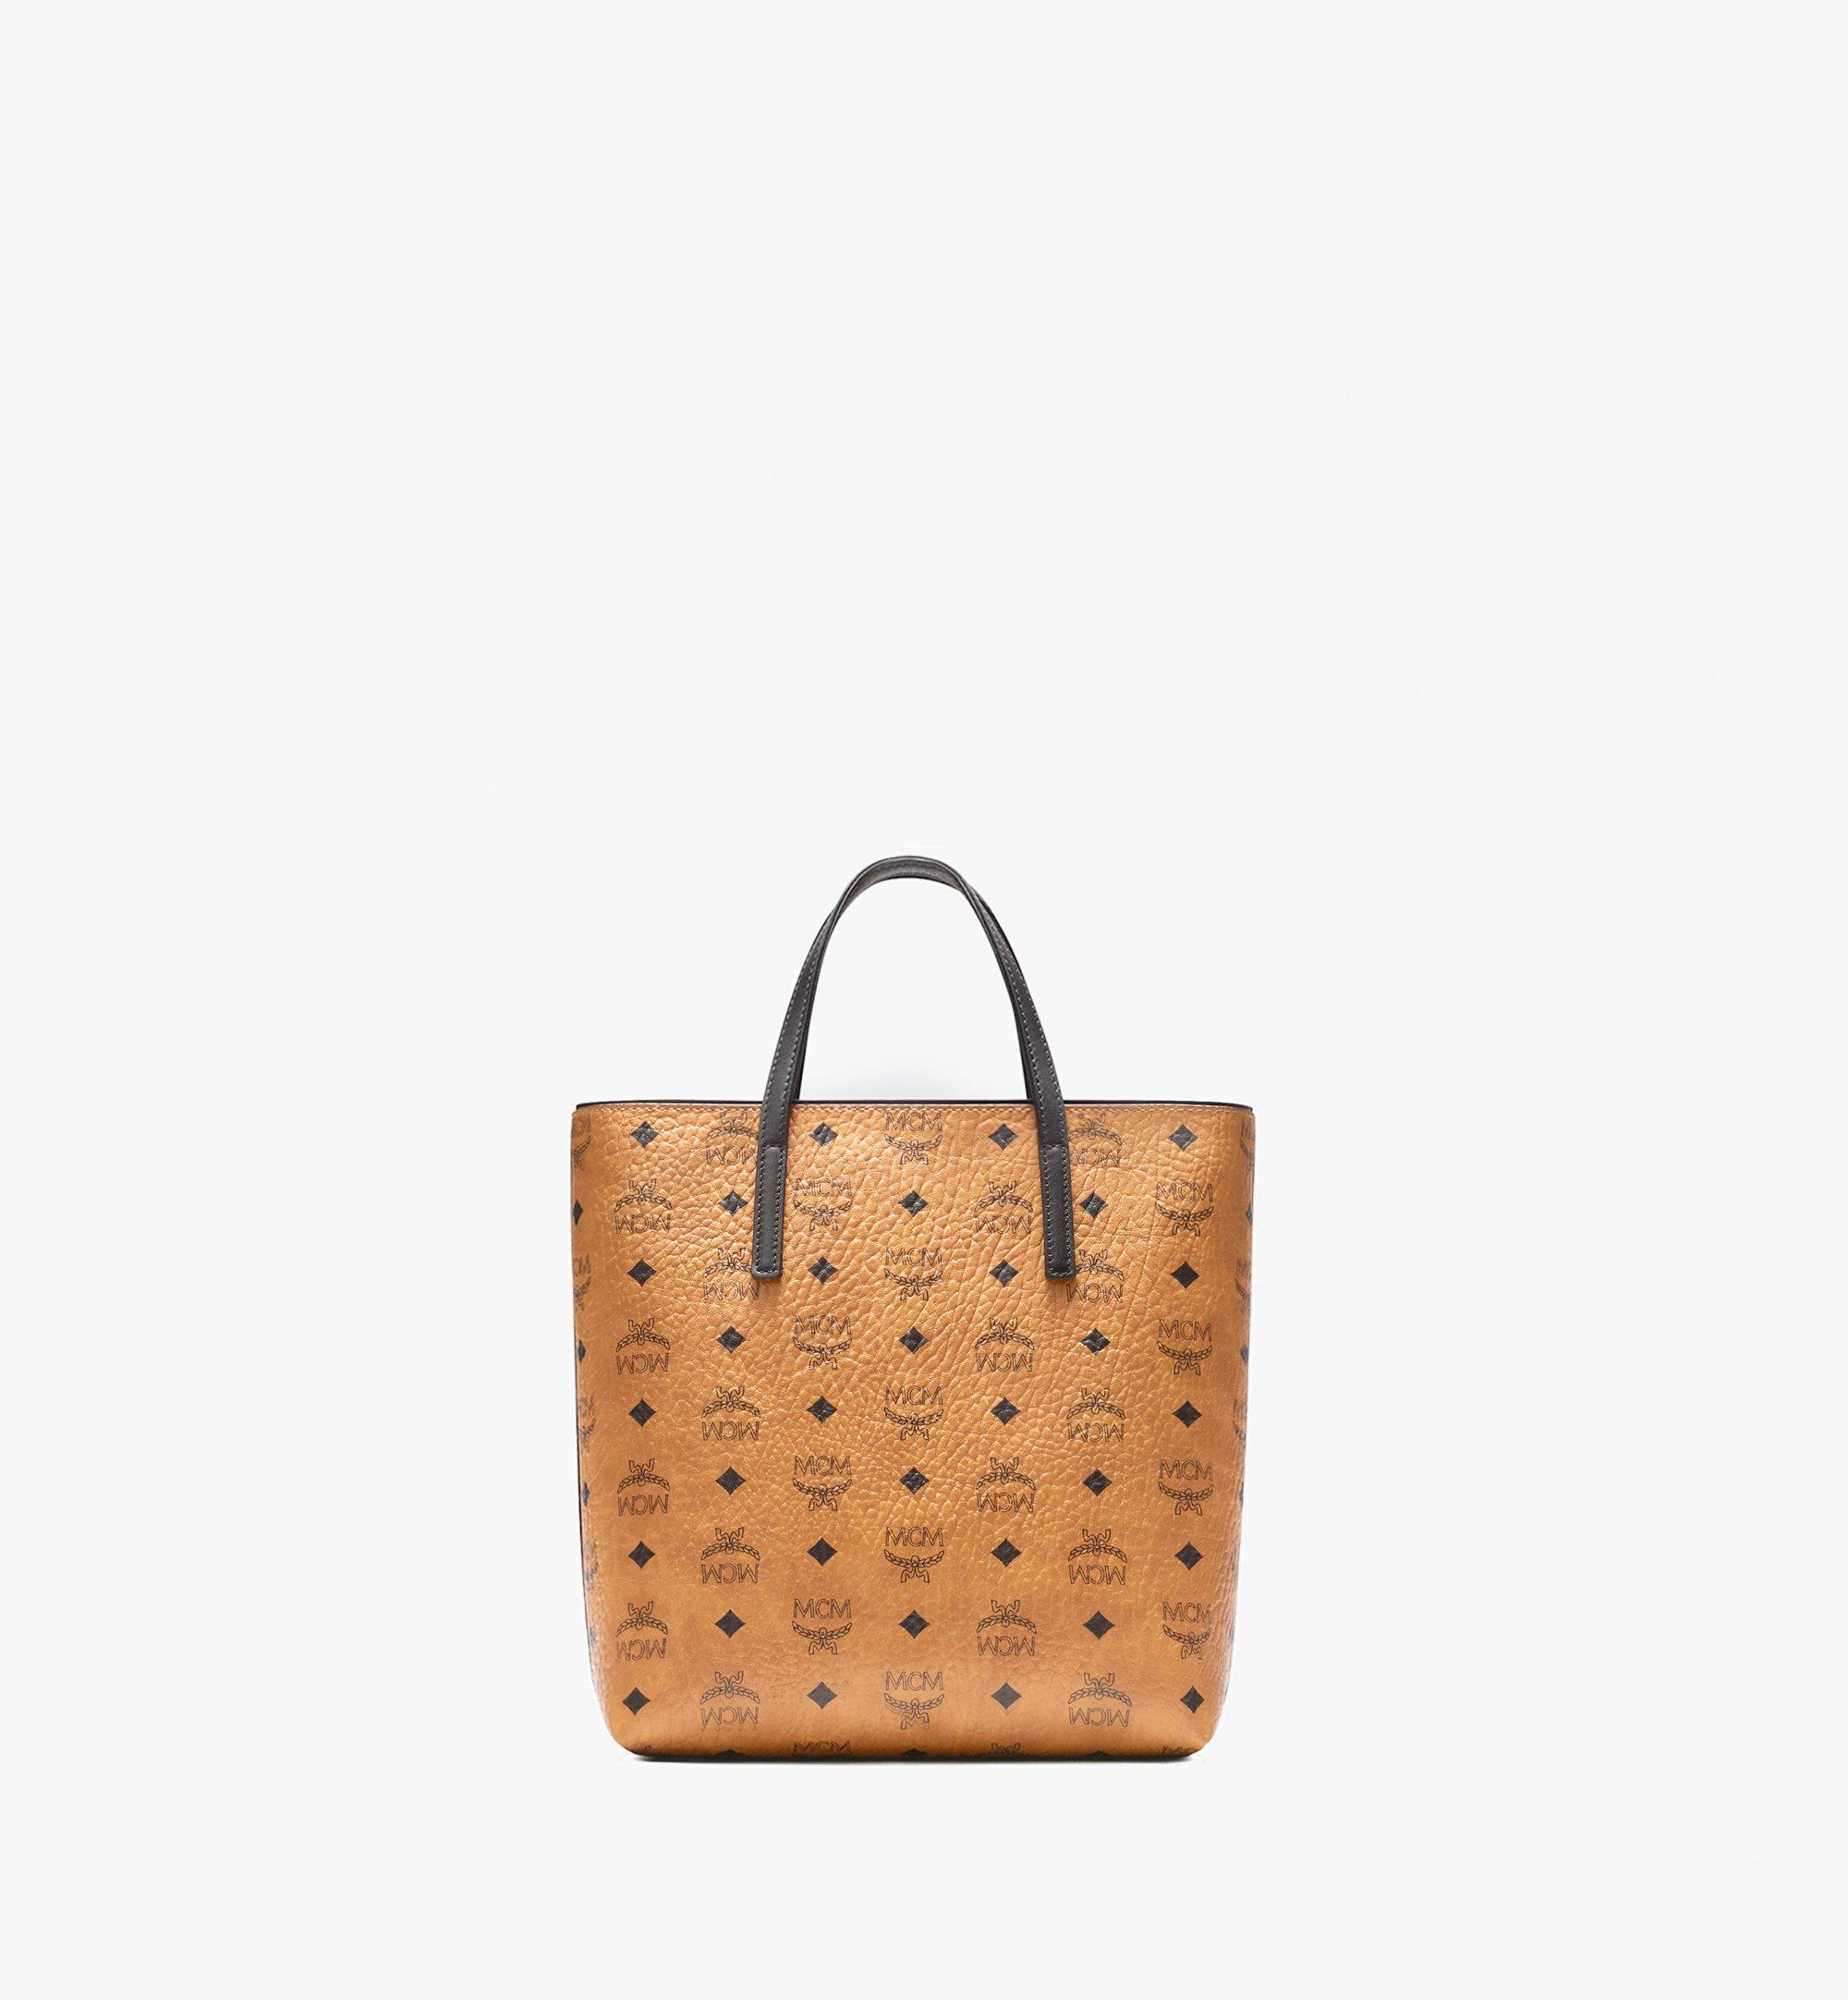 Medium Anya Shopper in Visetos Cognac | MCM® DE